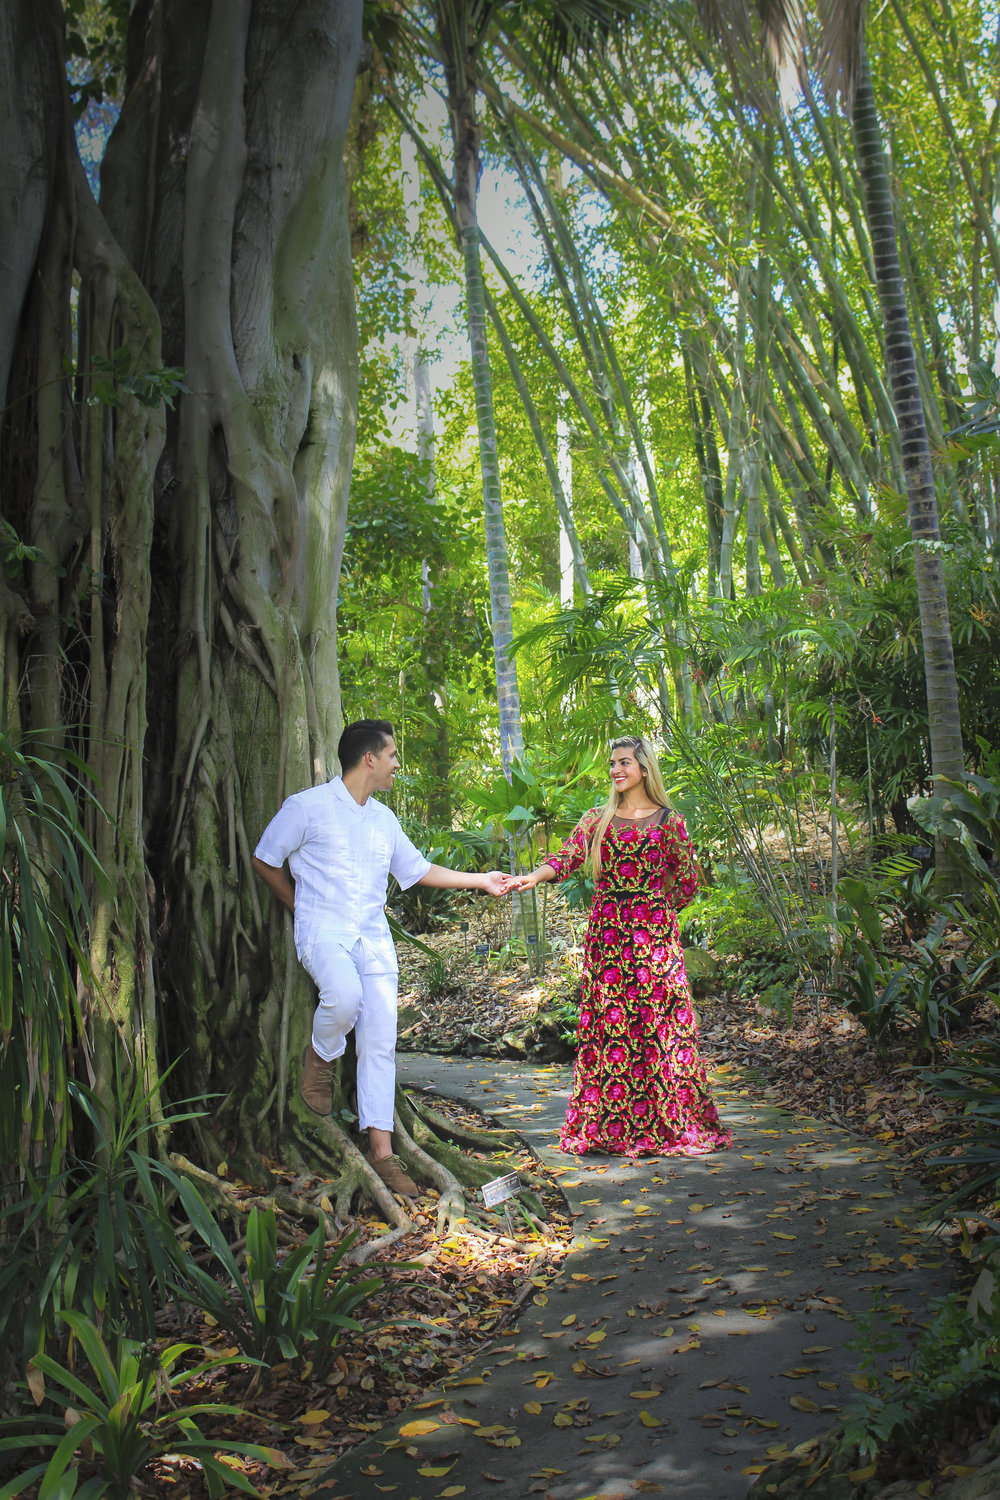 Holding hands underneath a giant tree